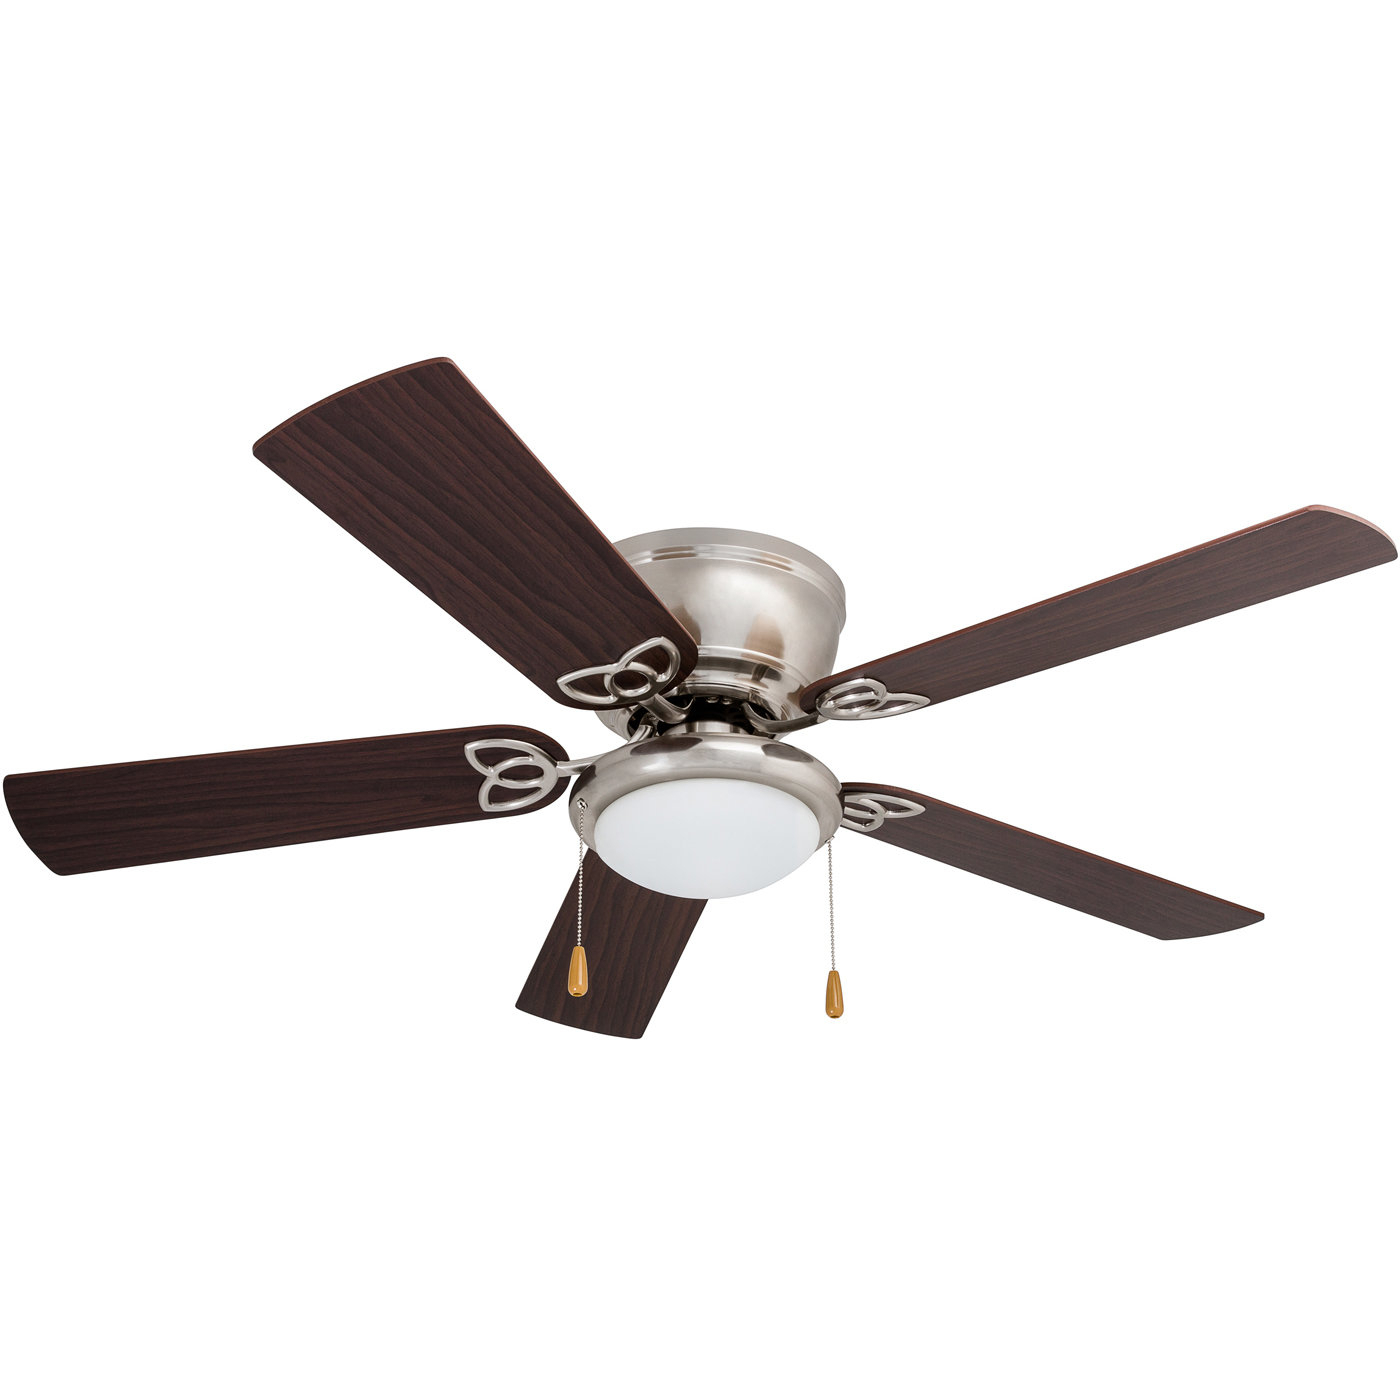 "52"" Mattias 5 Blade Ceiling Fan, Light Kit Included Throughout Latest Mattias 5 Blade Ceiling Fans (View 2 of 20)"